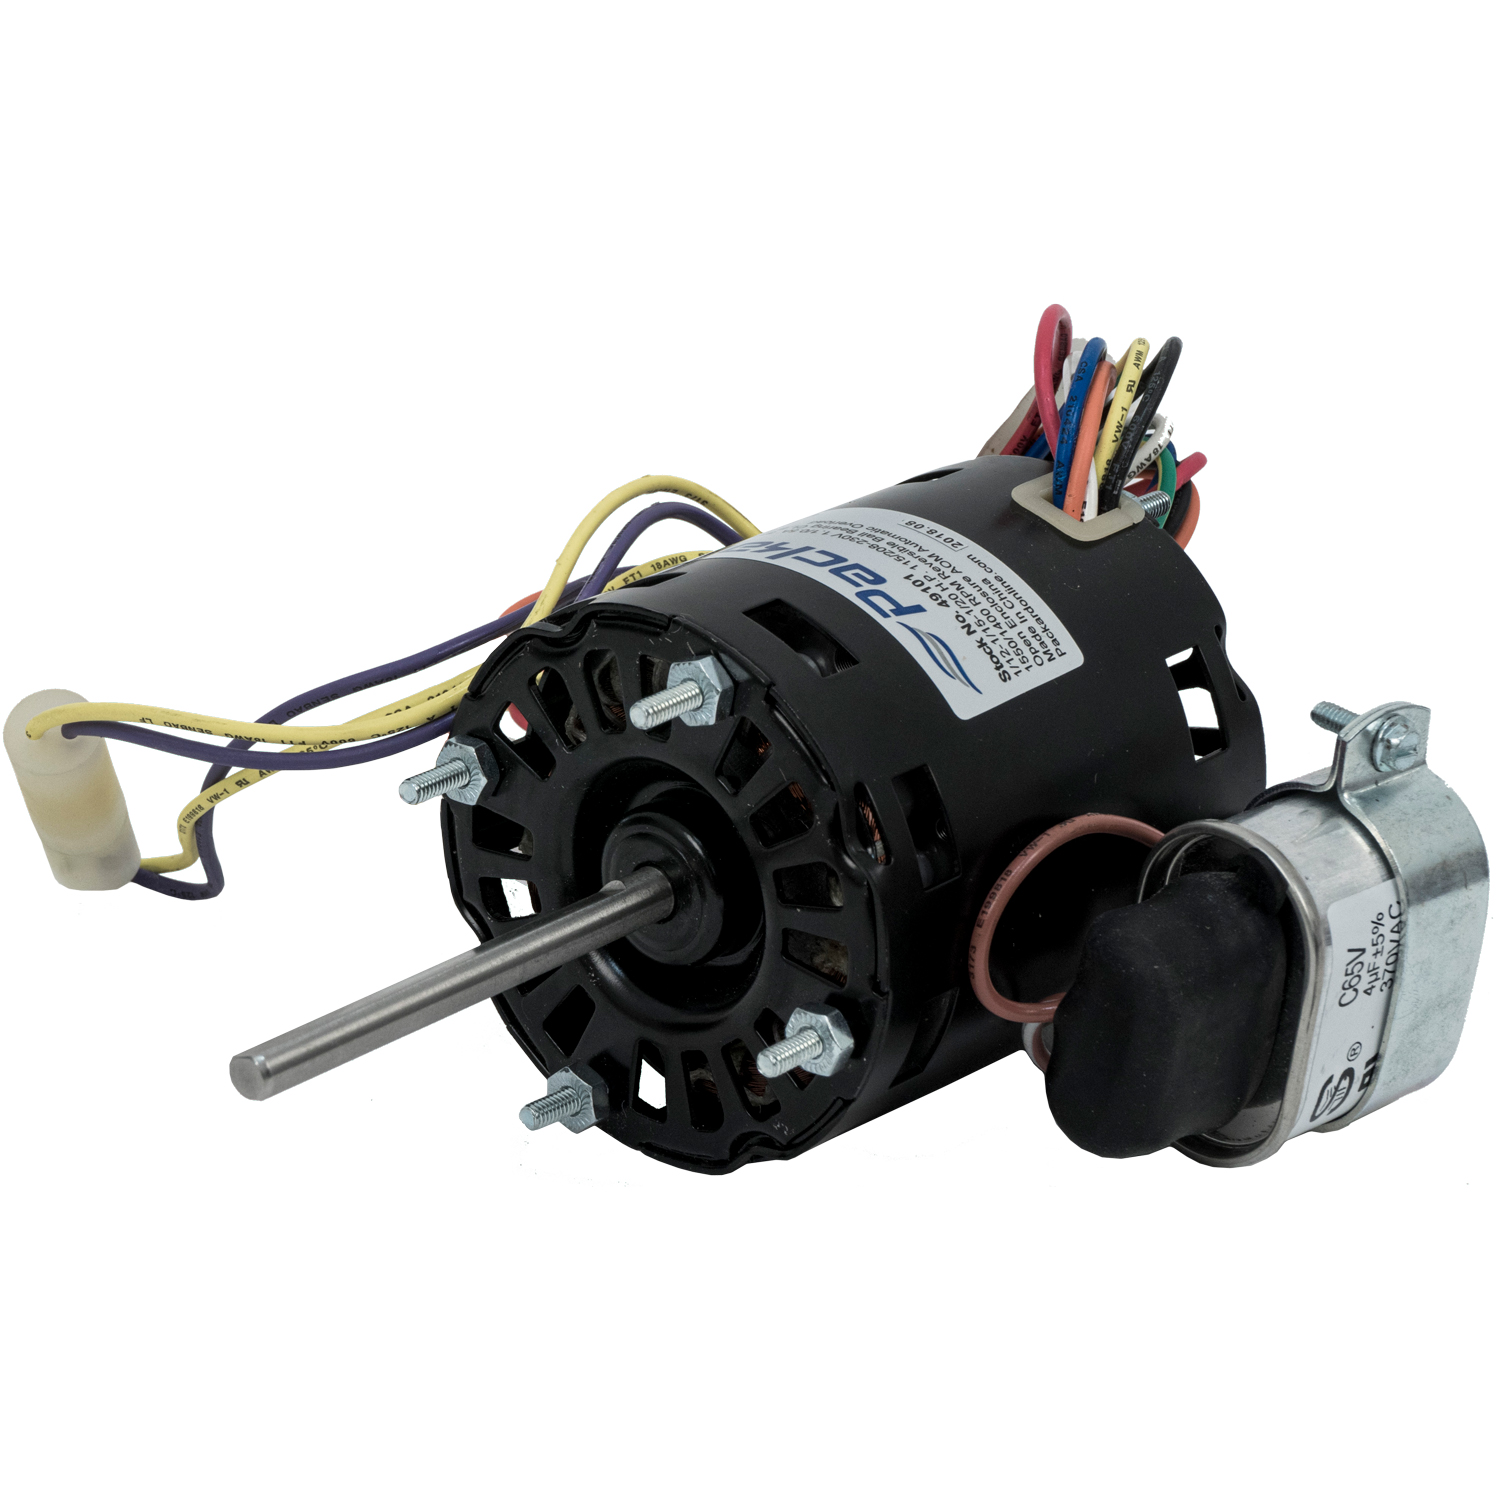 hight resolution of 3 3 psc motor 1 12 1 15 1 20 hp 115 208 230 volt 1550 1400 rpm packard online